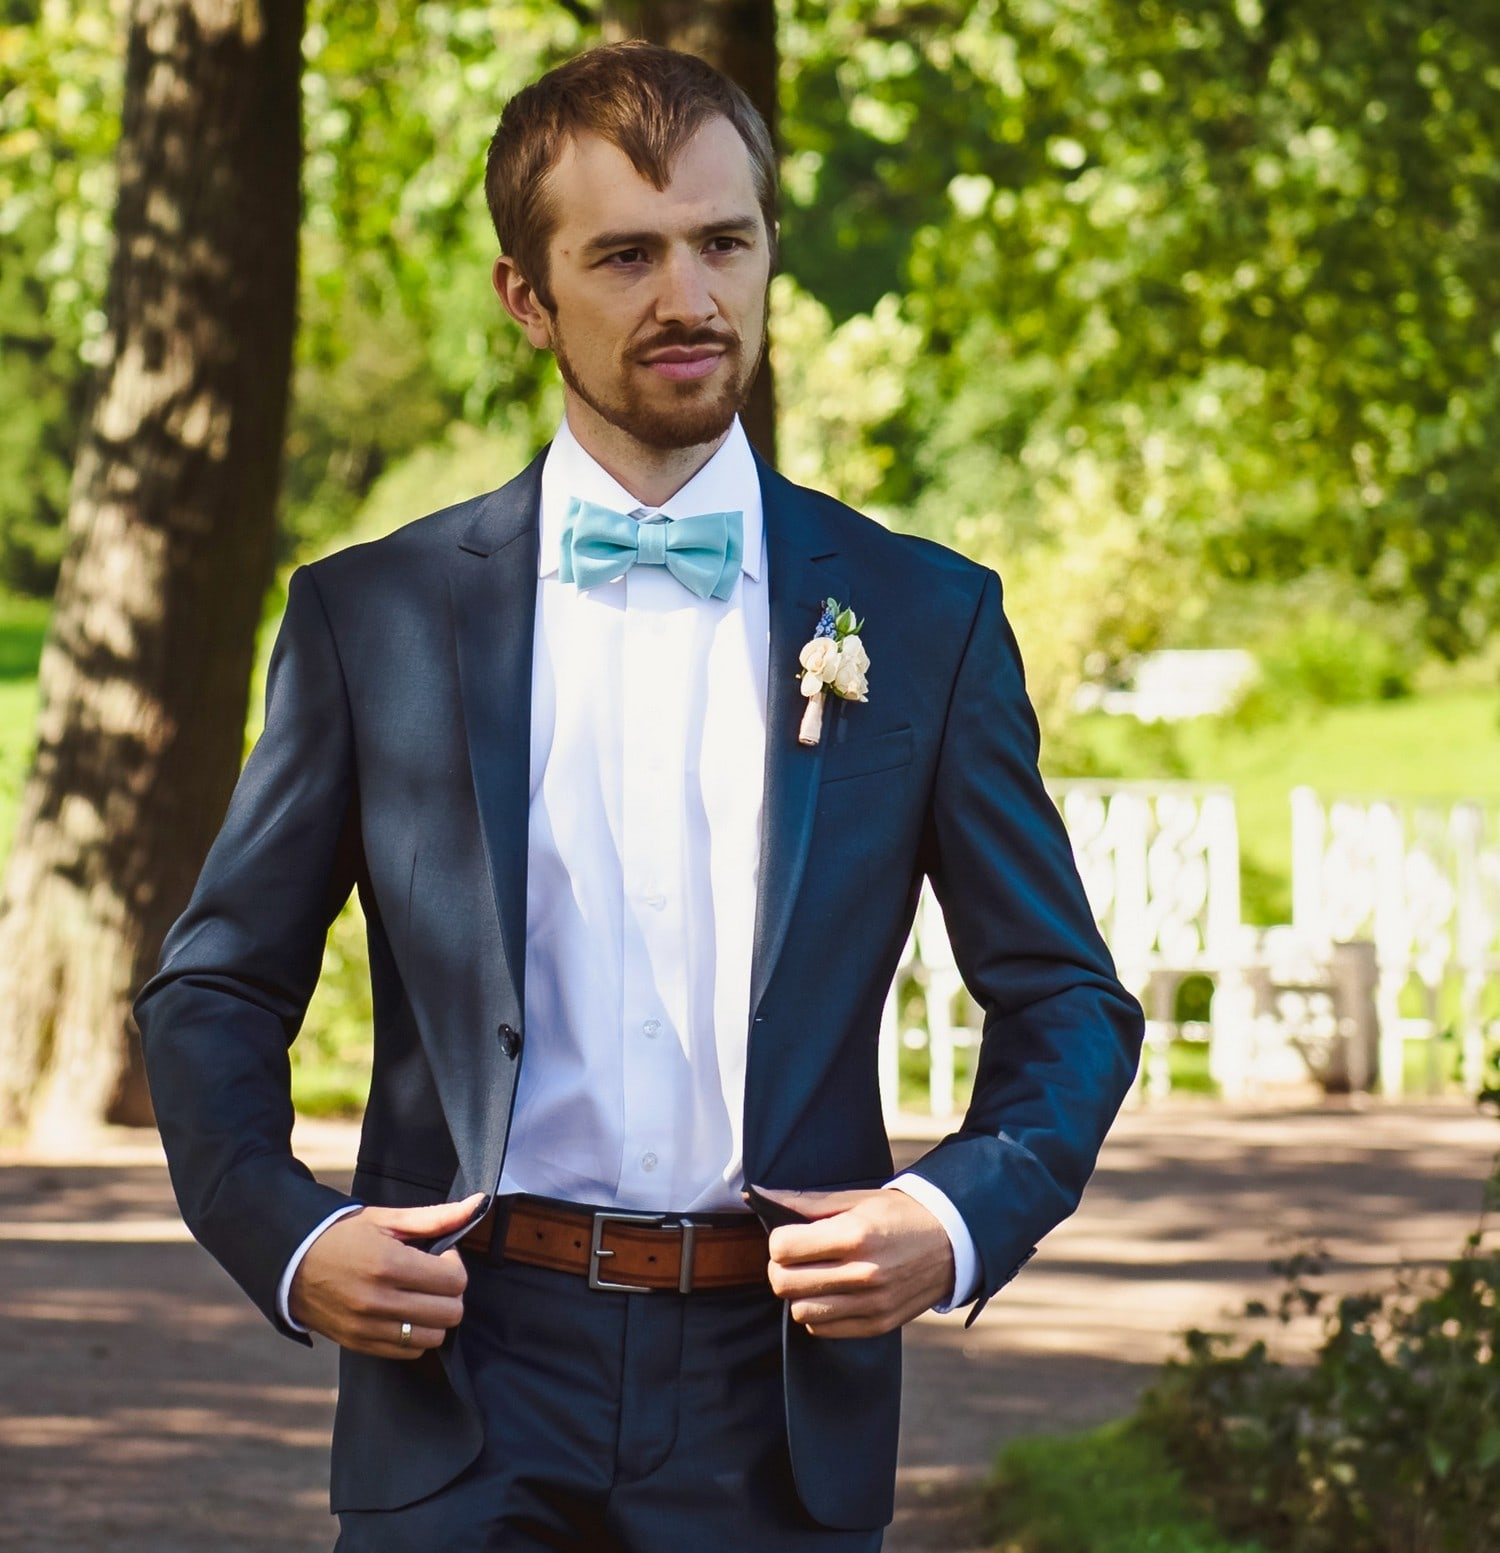 Young Entrepreneurs Talk, Andrew Walton, Wedding Suit, Park